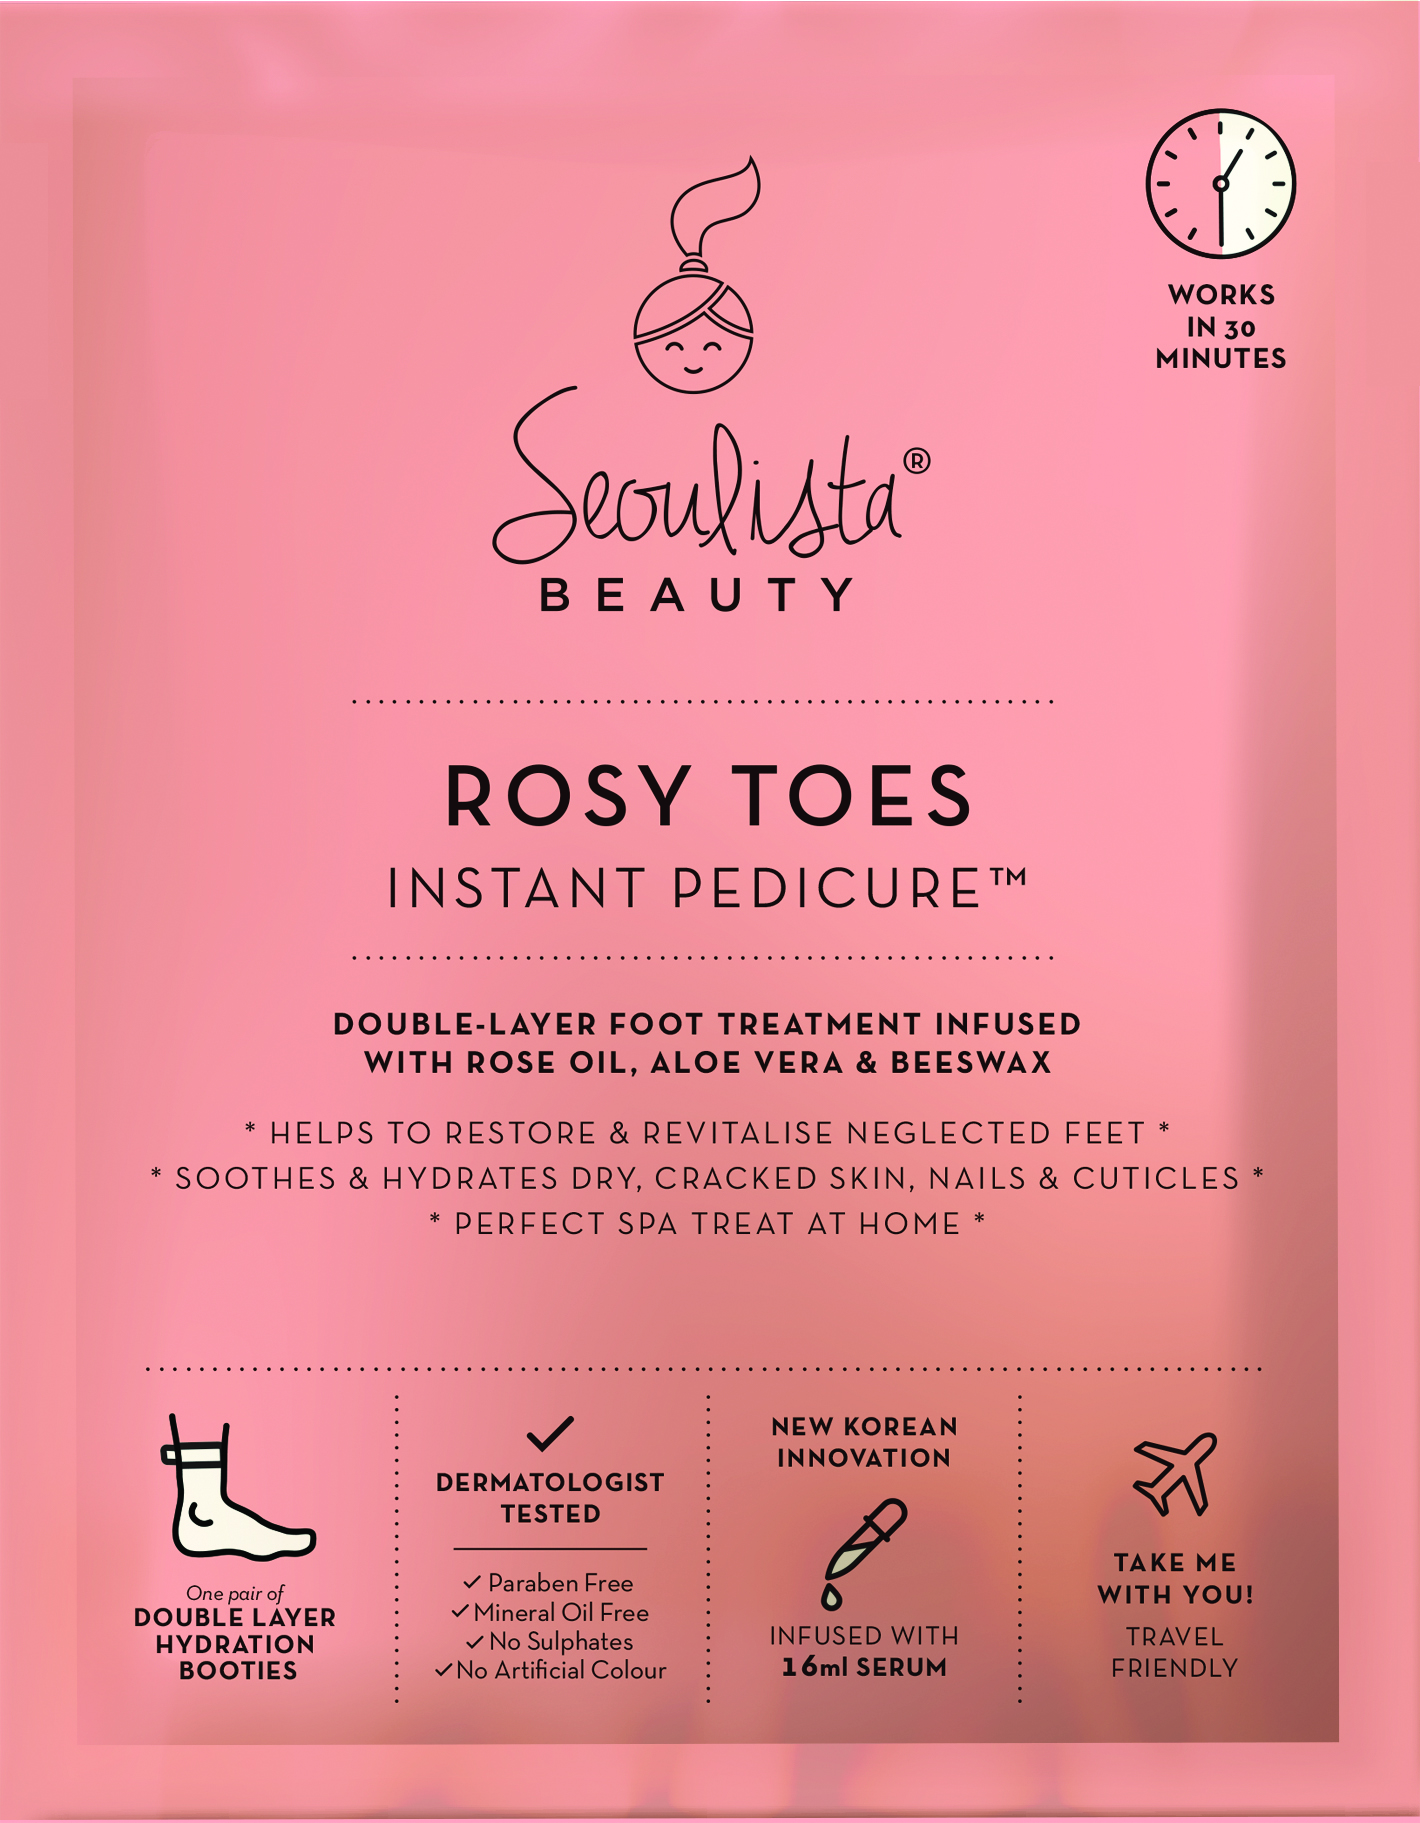 Seouista Beauty Rosy Toes Instant Pedicure